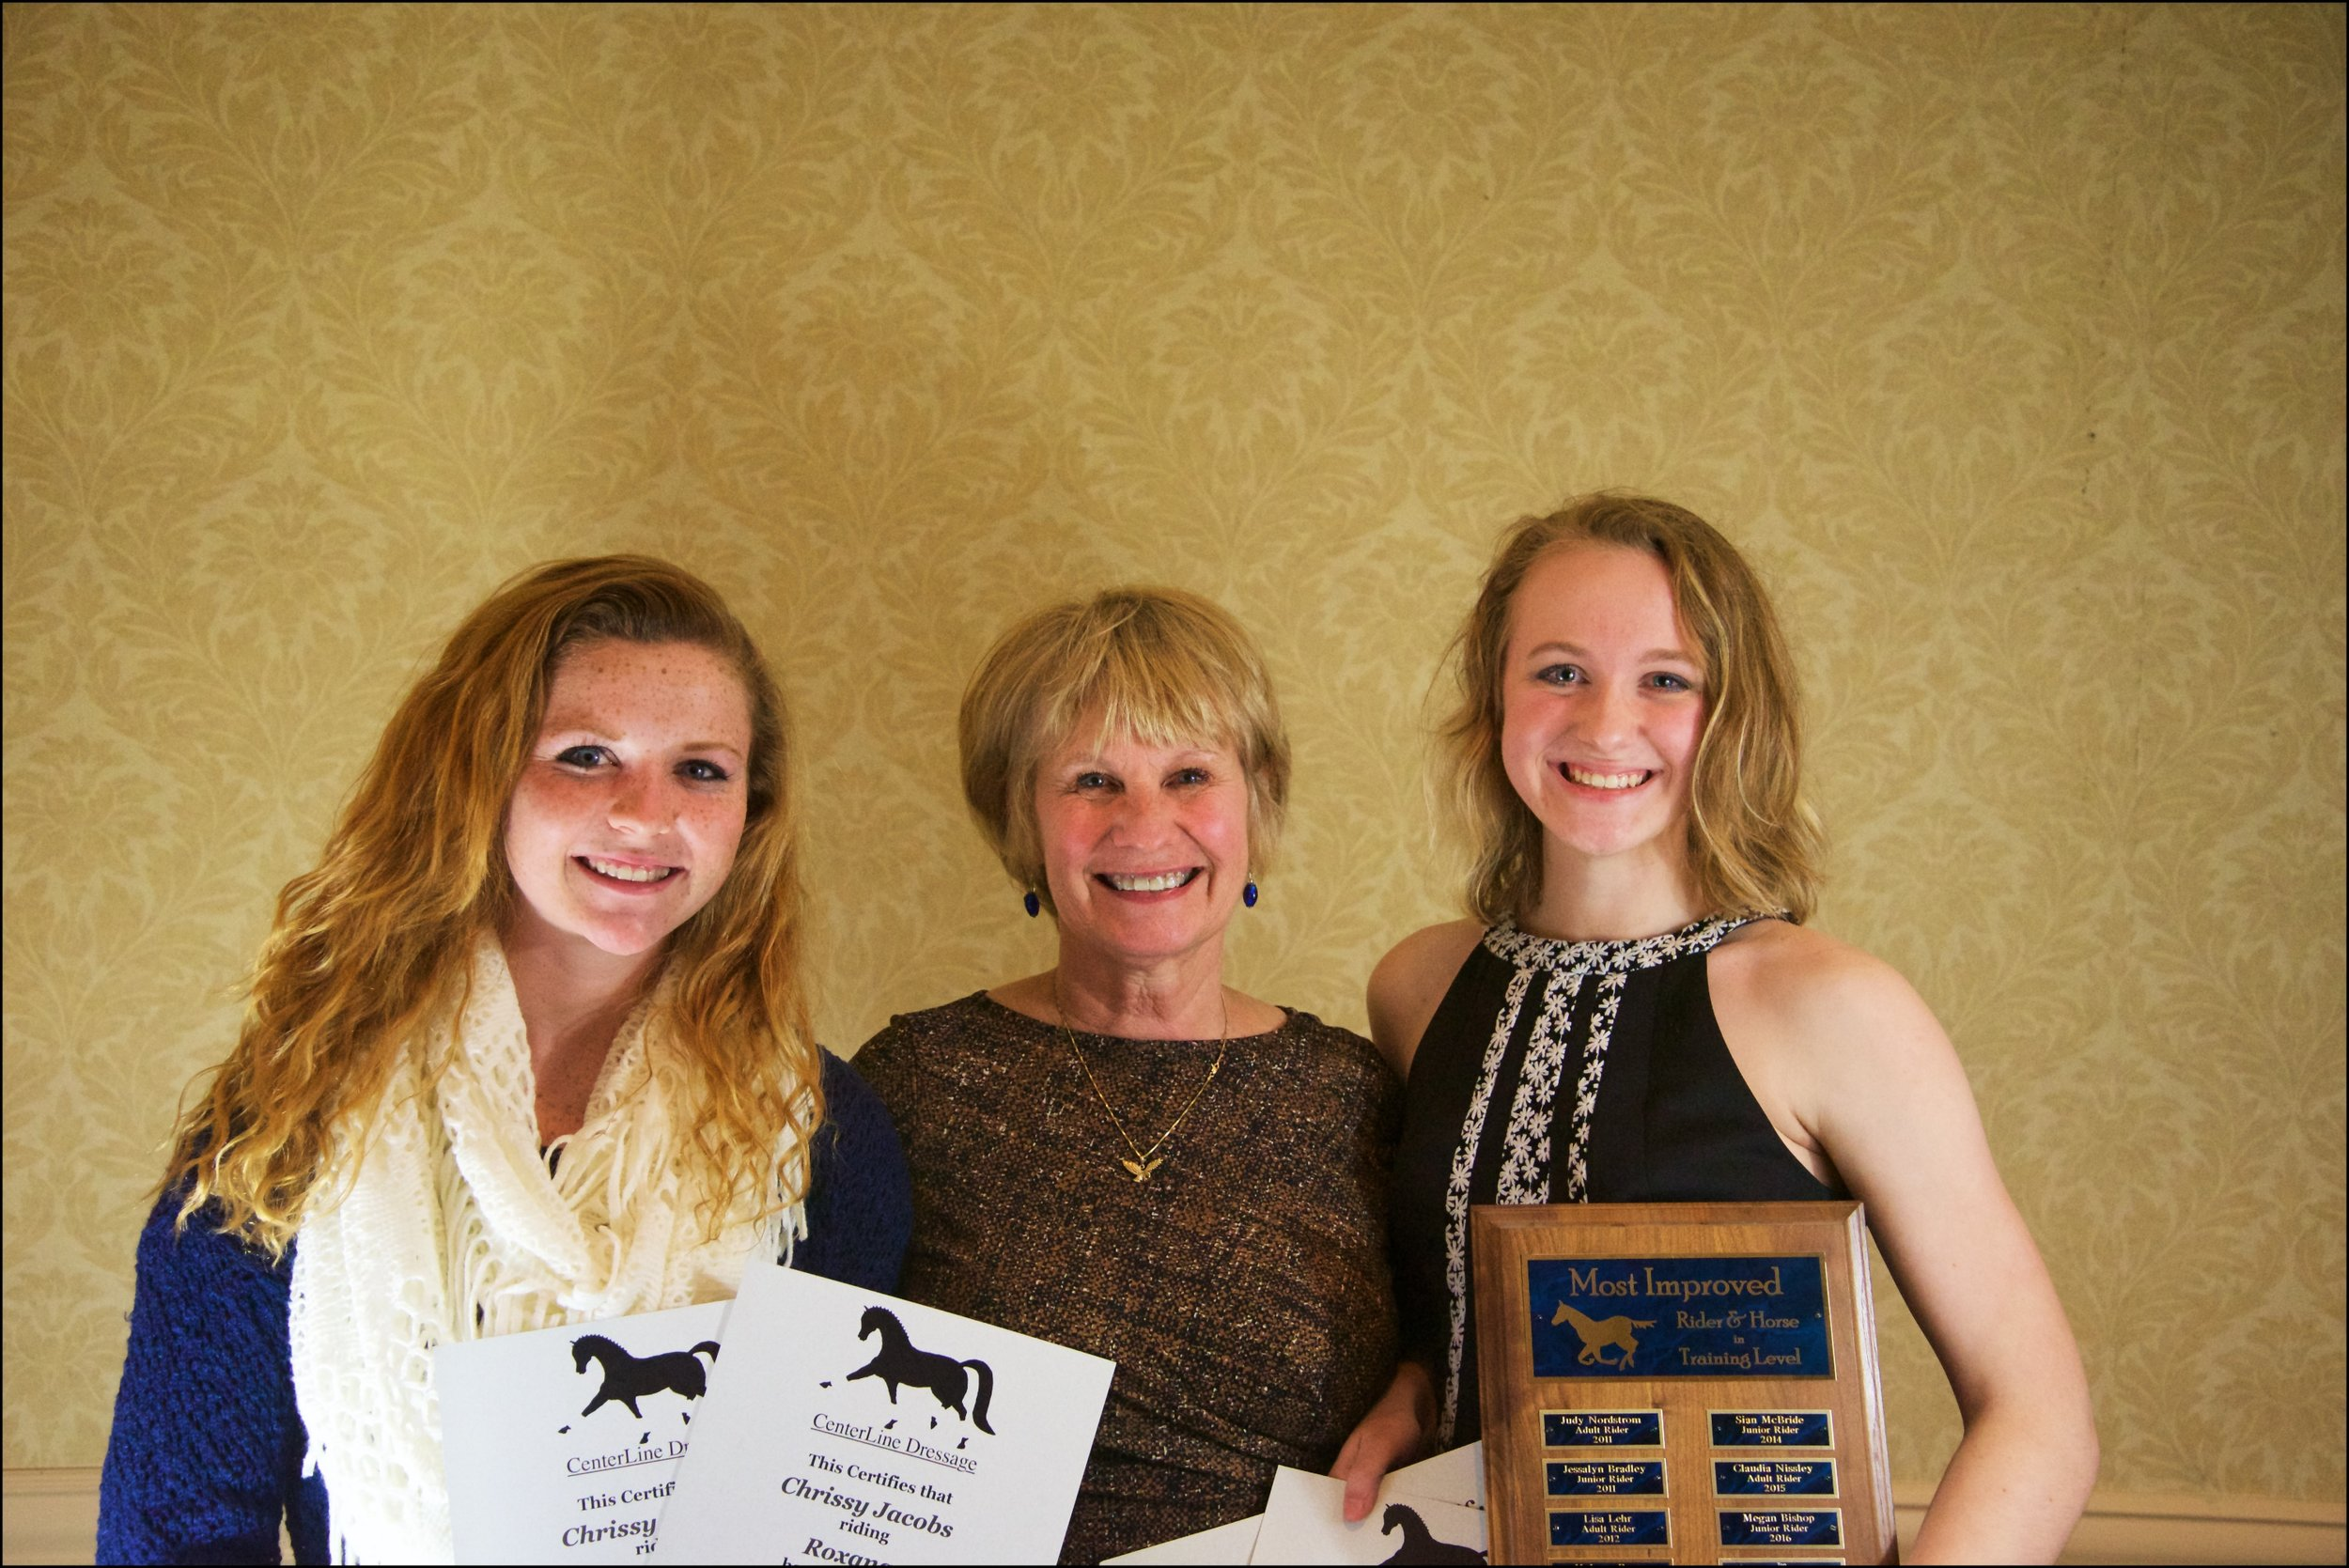 Chrissy Jacobs (left) & Megan Bishop (right) with their mount's owner Chrissy Moran (center)